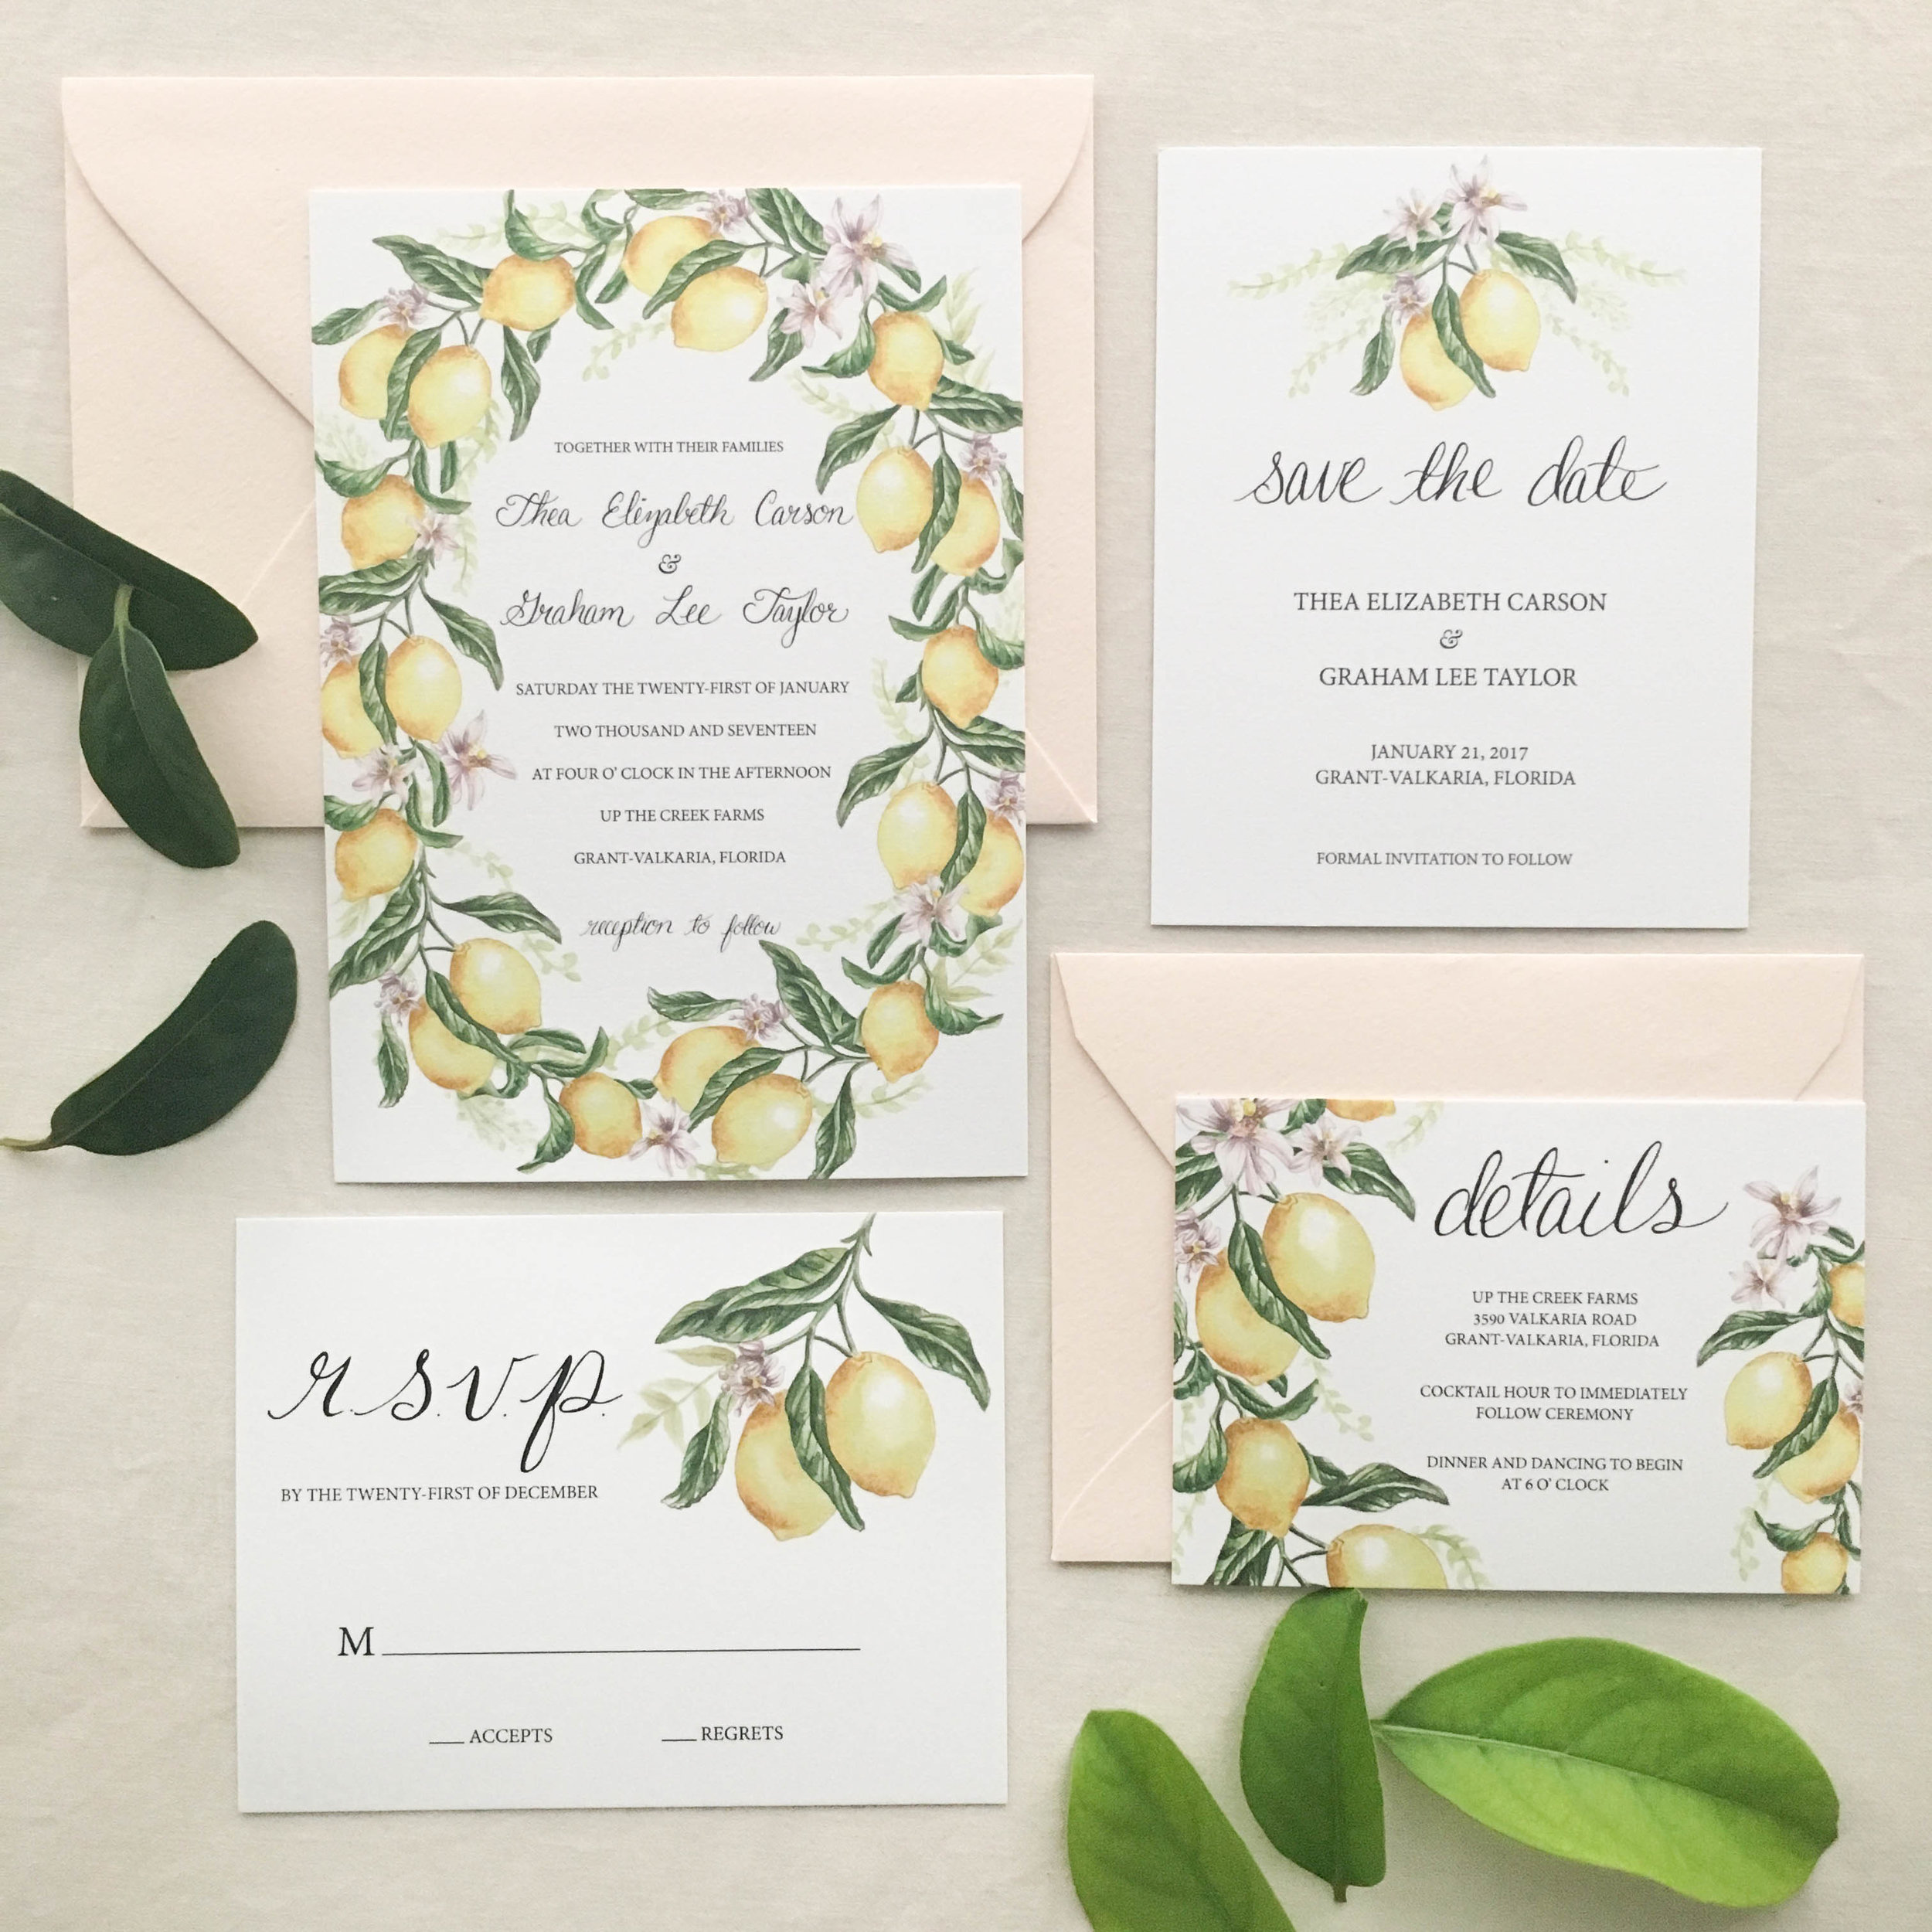 Janice Nelson Made in USA lemon wreath wedding stationery with bright yellow citrus and green wreath semi-custom hand painted watercolor wedding invitation custom wedding invite